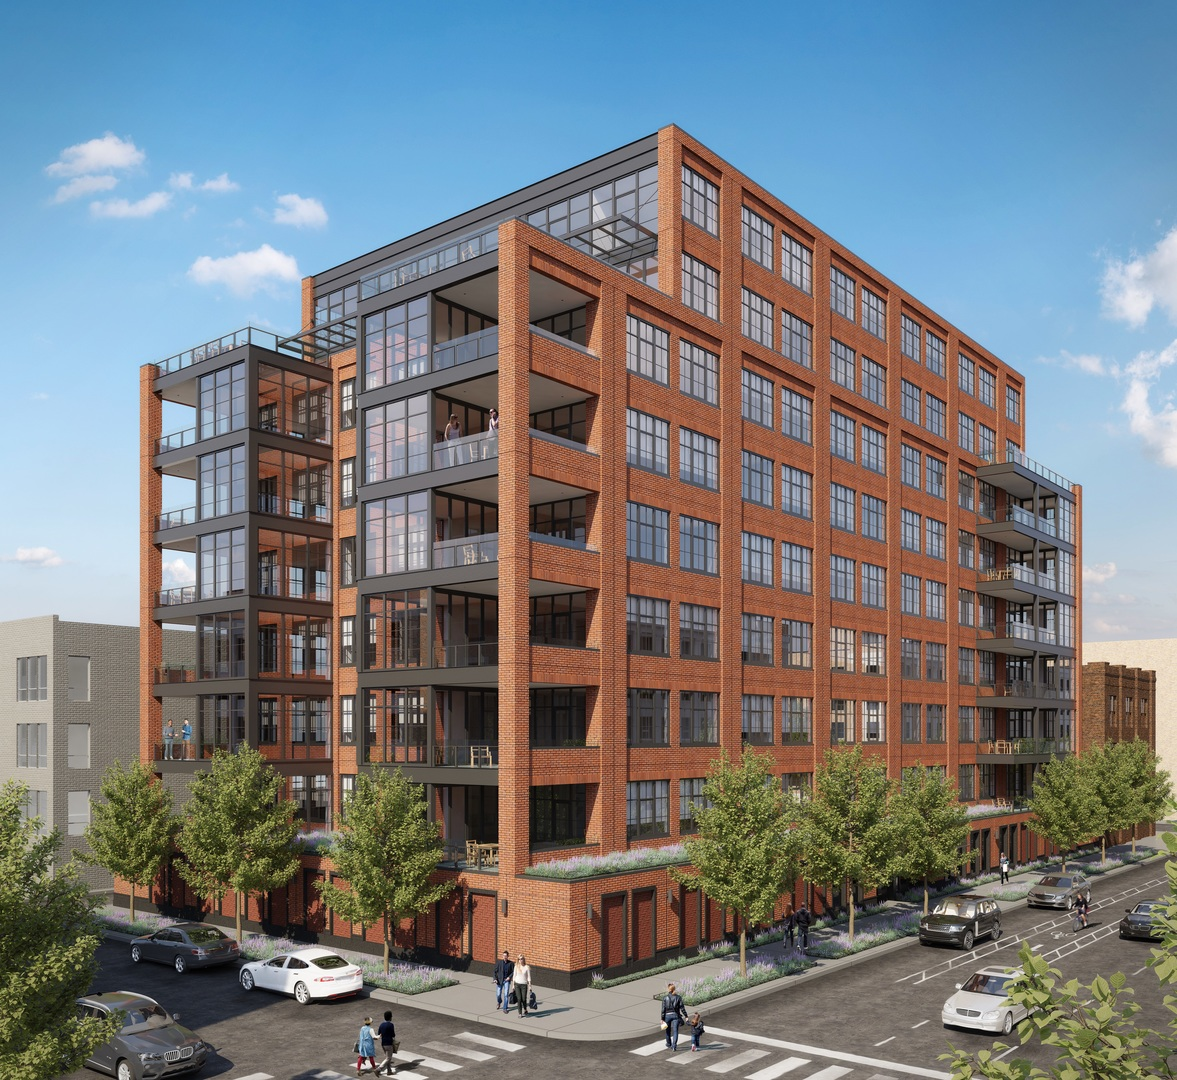 Кондоминиум для того Продажа на 1109 West Washington Boulevard #6C 1109 West Washington Boulevard #6C Chicago, Иллинойс,60607 Соединенные Штаты